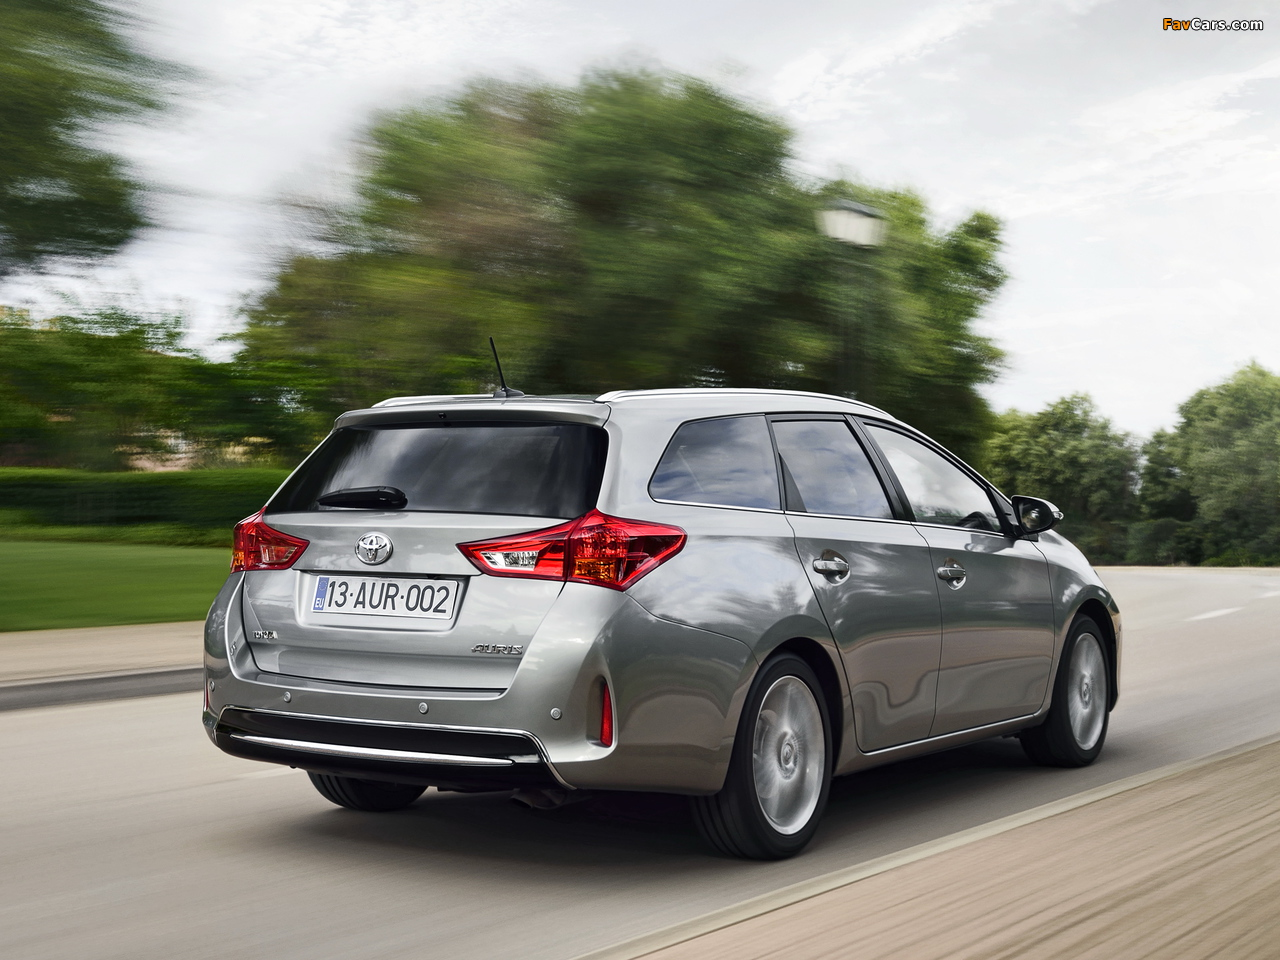 Toyota Auris Touring Sports 2013 images (1280 x 960)